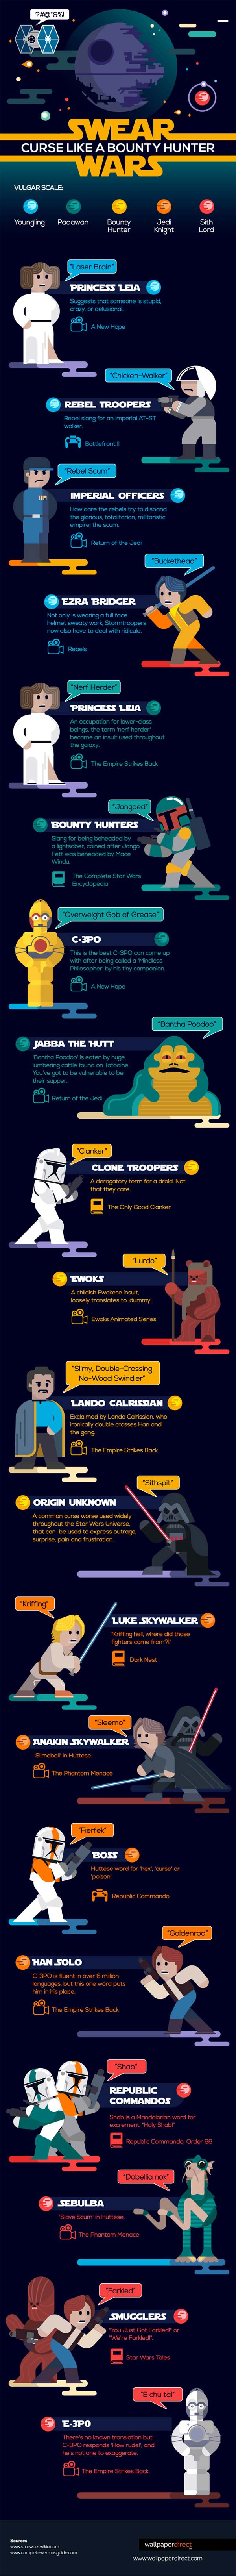 A look at some of the common slang, swear words, and sayings from the Star Wars universe! [Source: Wallpaperdirect.com]